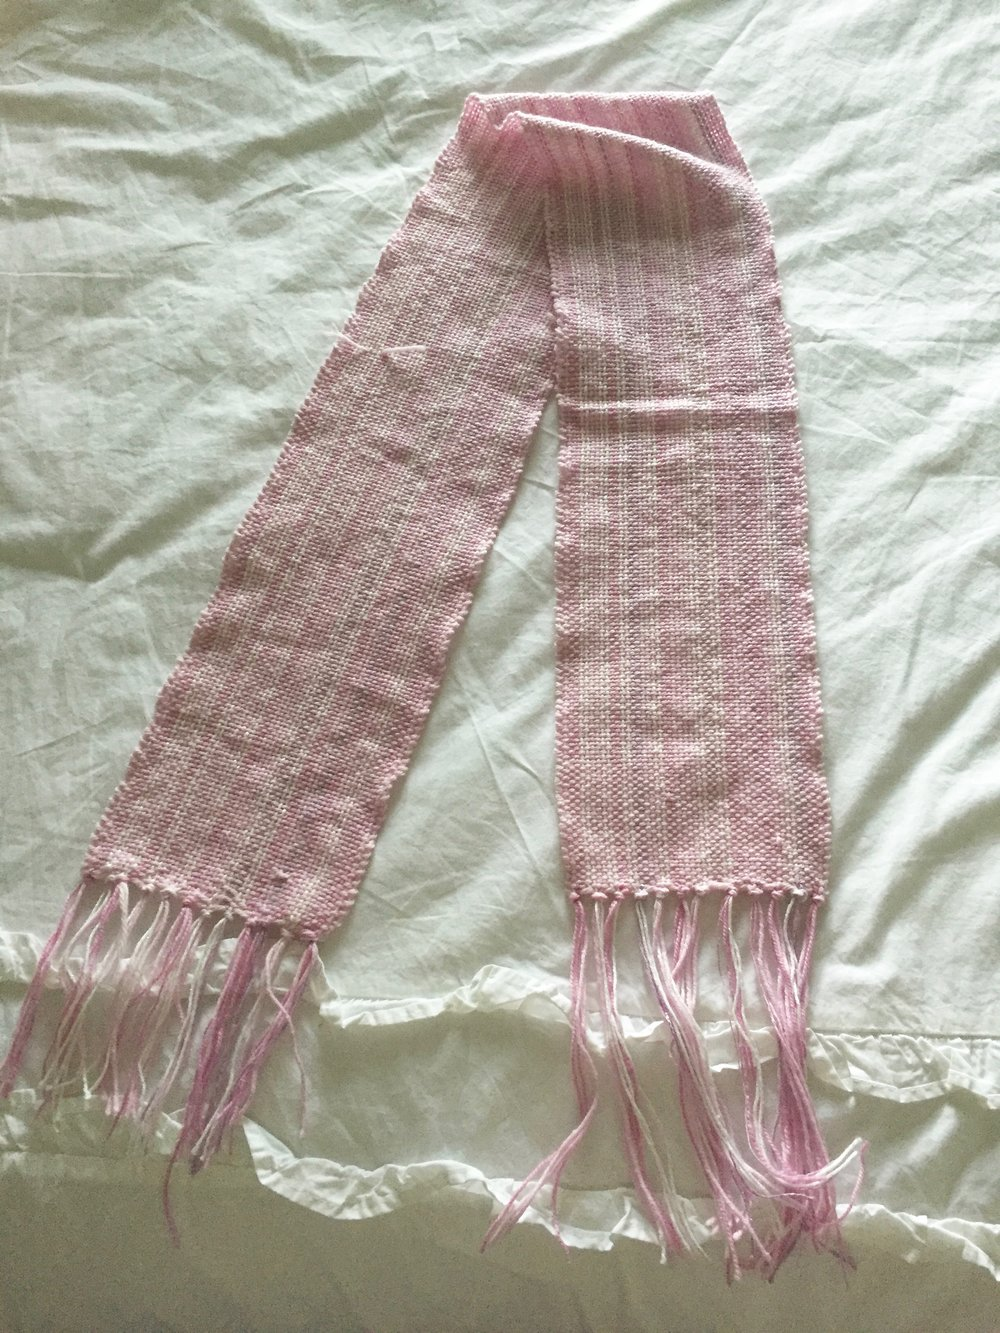 my (mostly) finished scarf! I still need to wet finish it and trim up my stray ends and fringe.